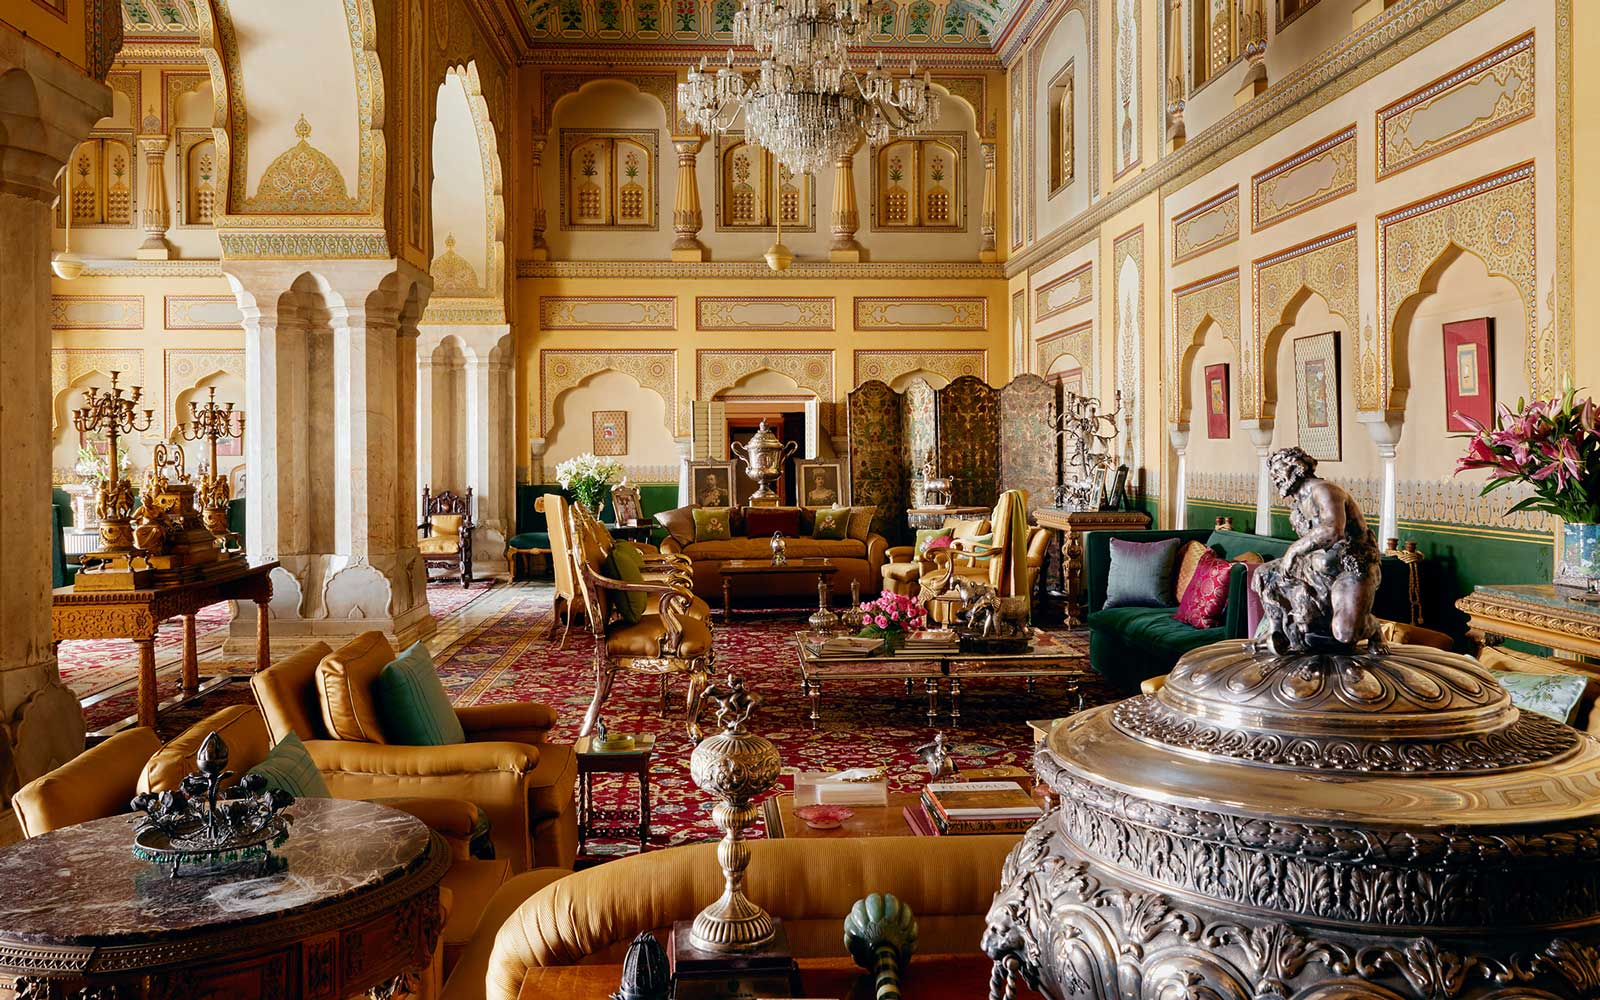 City Palace of Jaipur on Airbnb